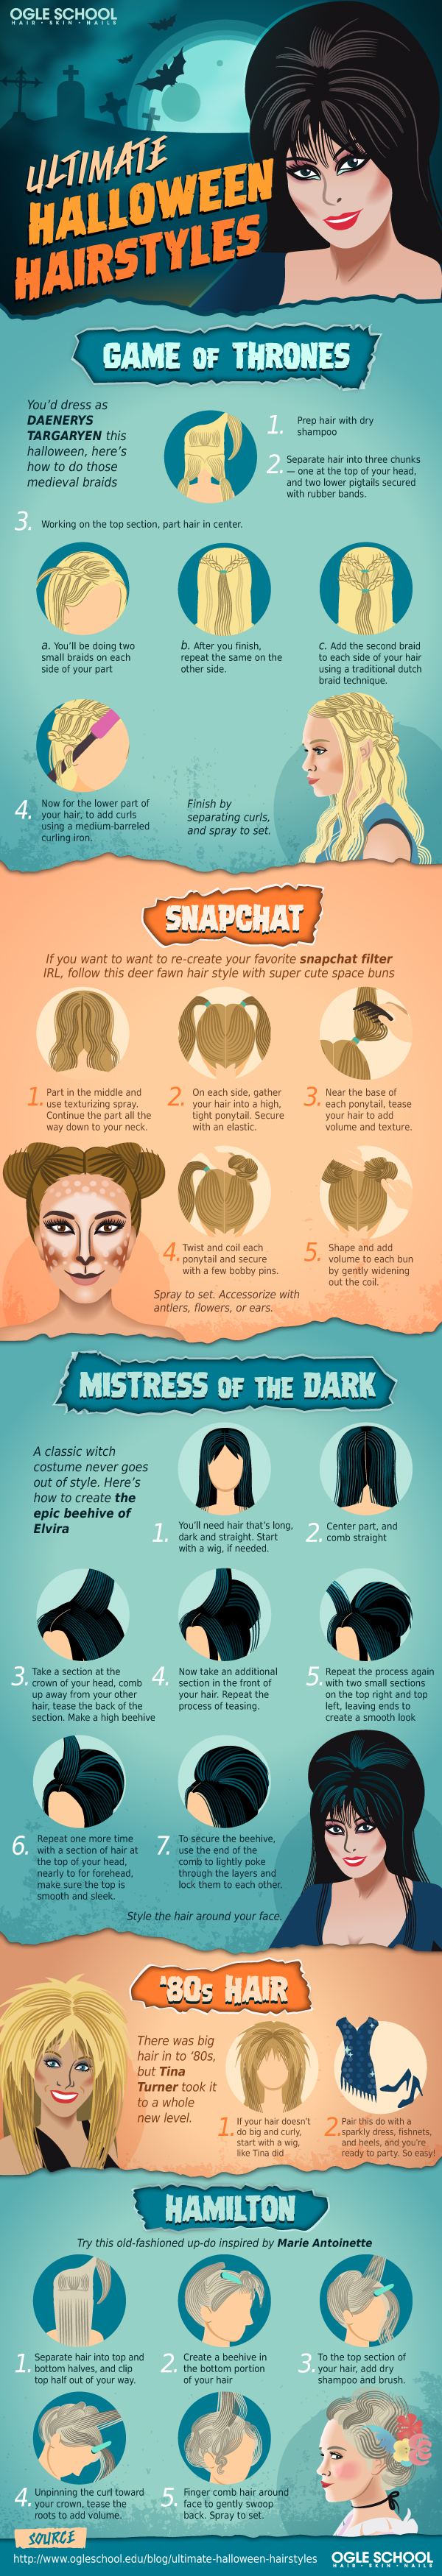 The Hairy Route to Halloween Costumes - Infographic